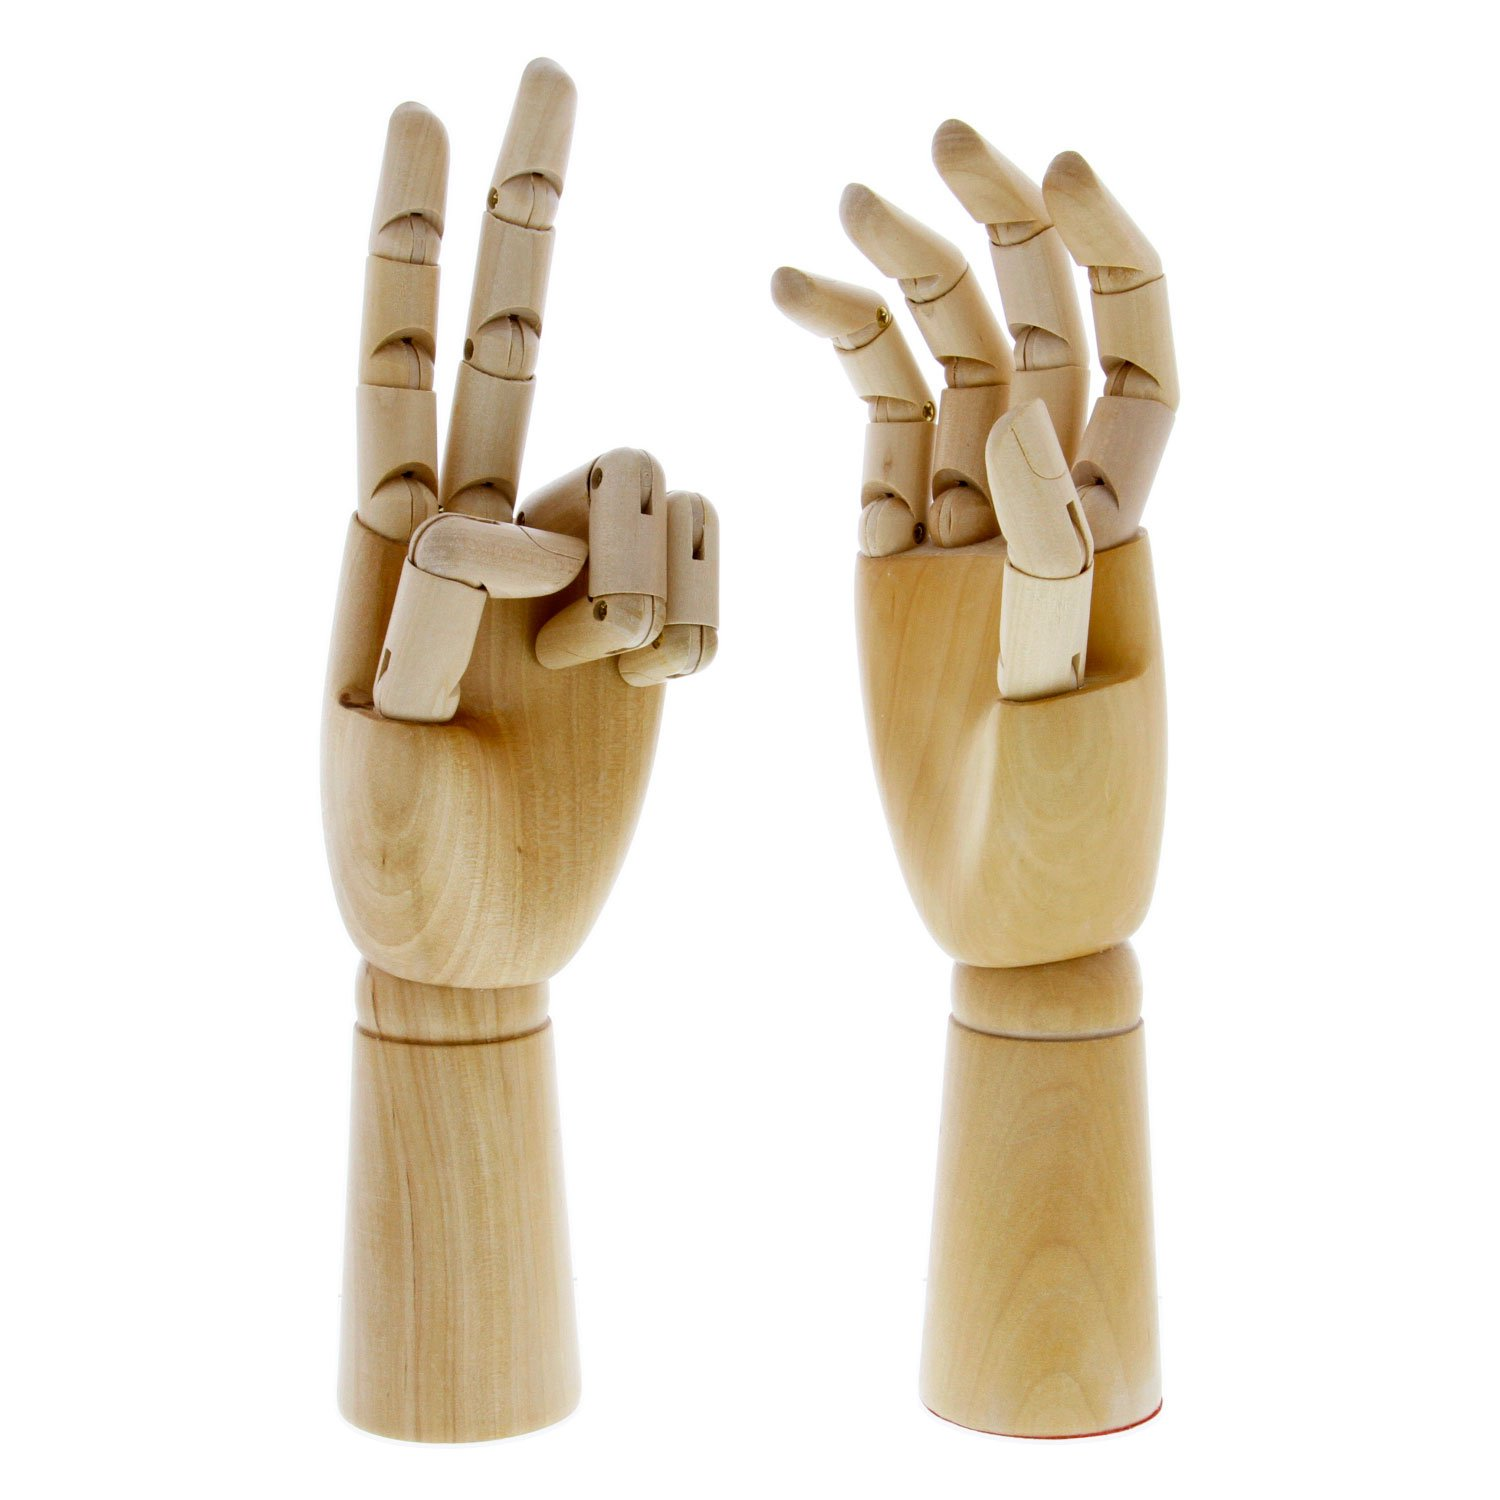 US Art Supply Pair of 12'' Left & 12'' Right Hands Wood Artist Drawing Manikin Articulated Mannequin with Wooden Flexible Fingers - Perfect for drawing the human hand (12'' Pair of Left & Right)